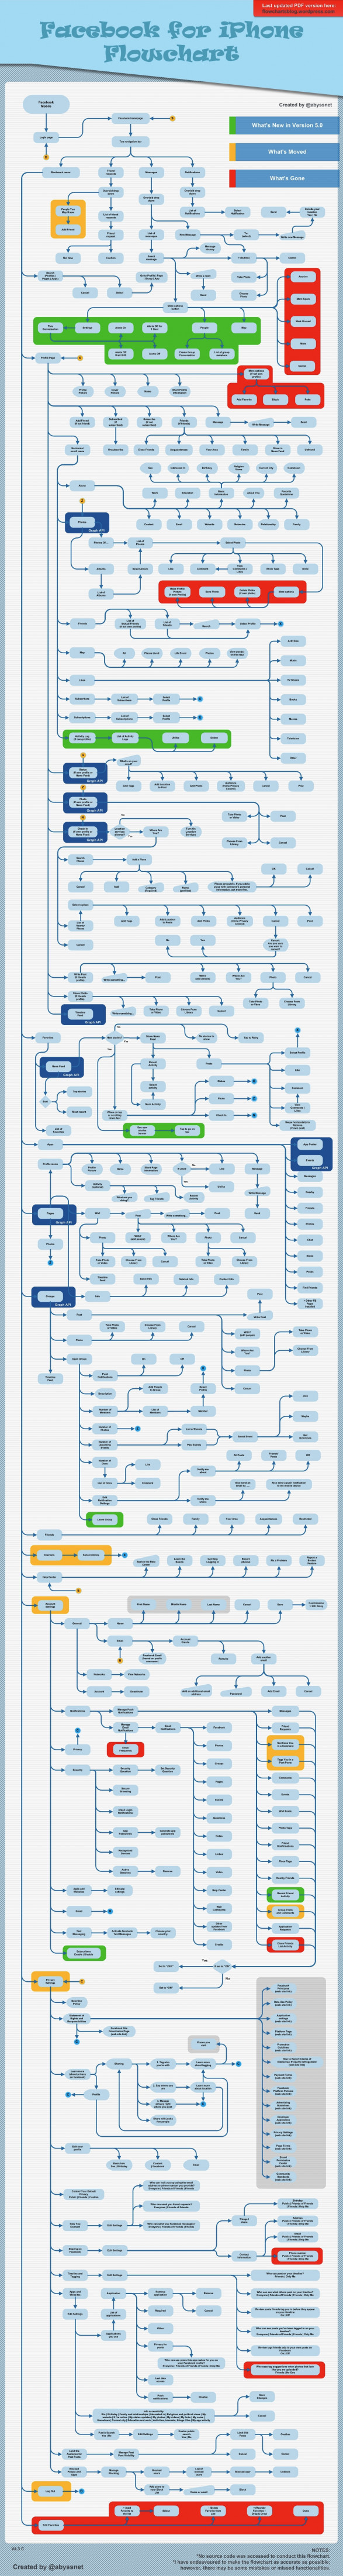 Facebook for iPhone Flowchart